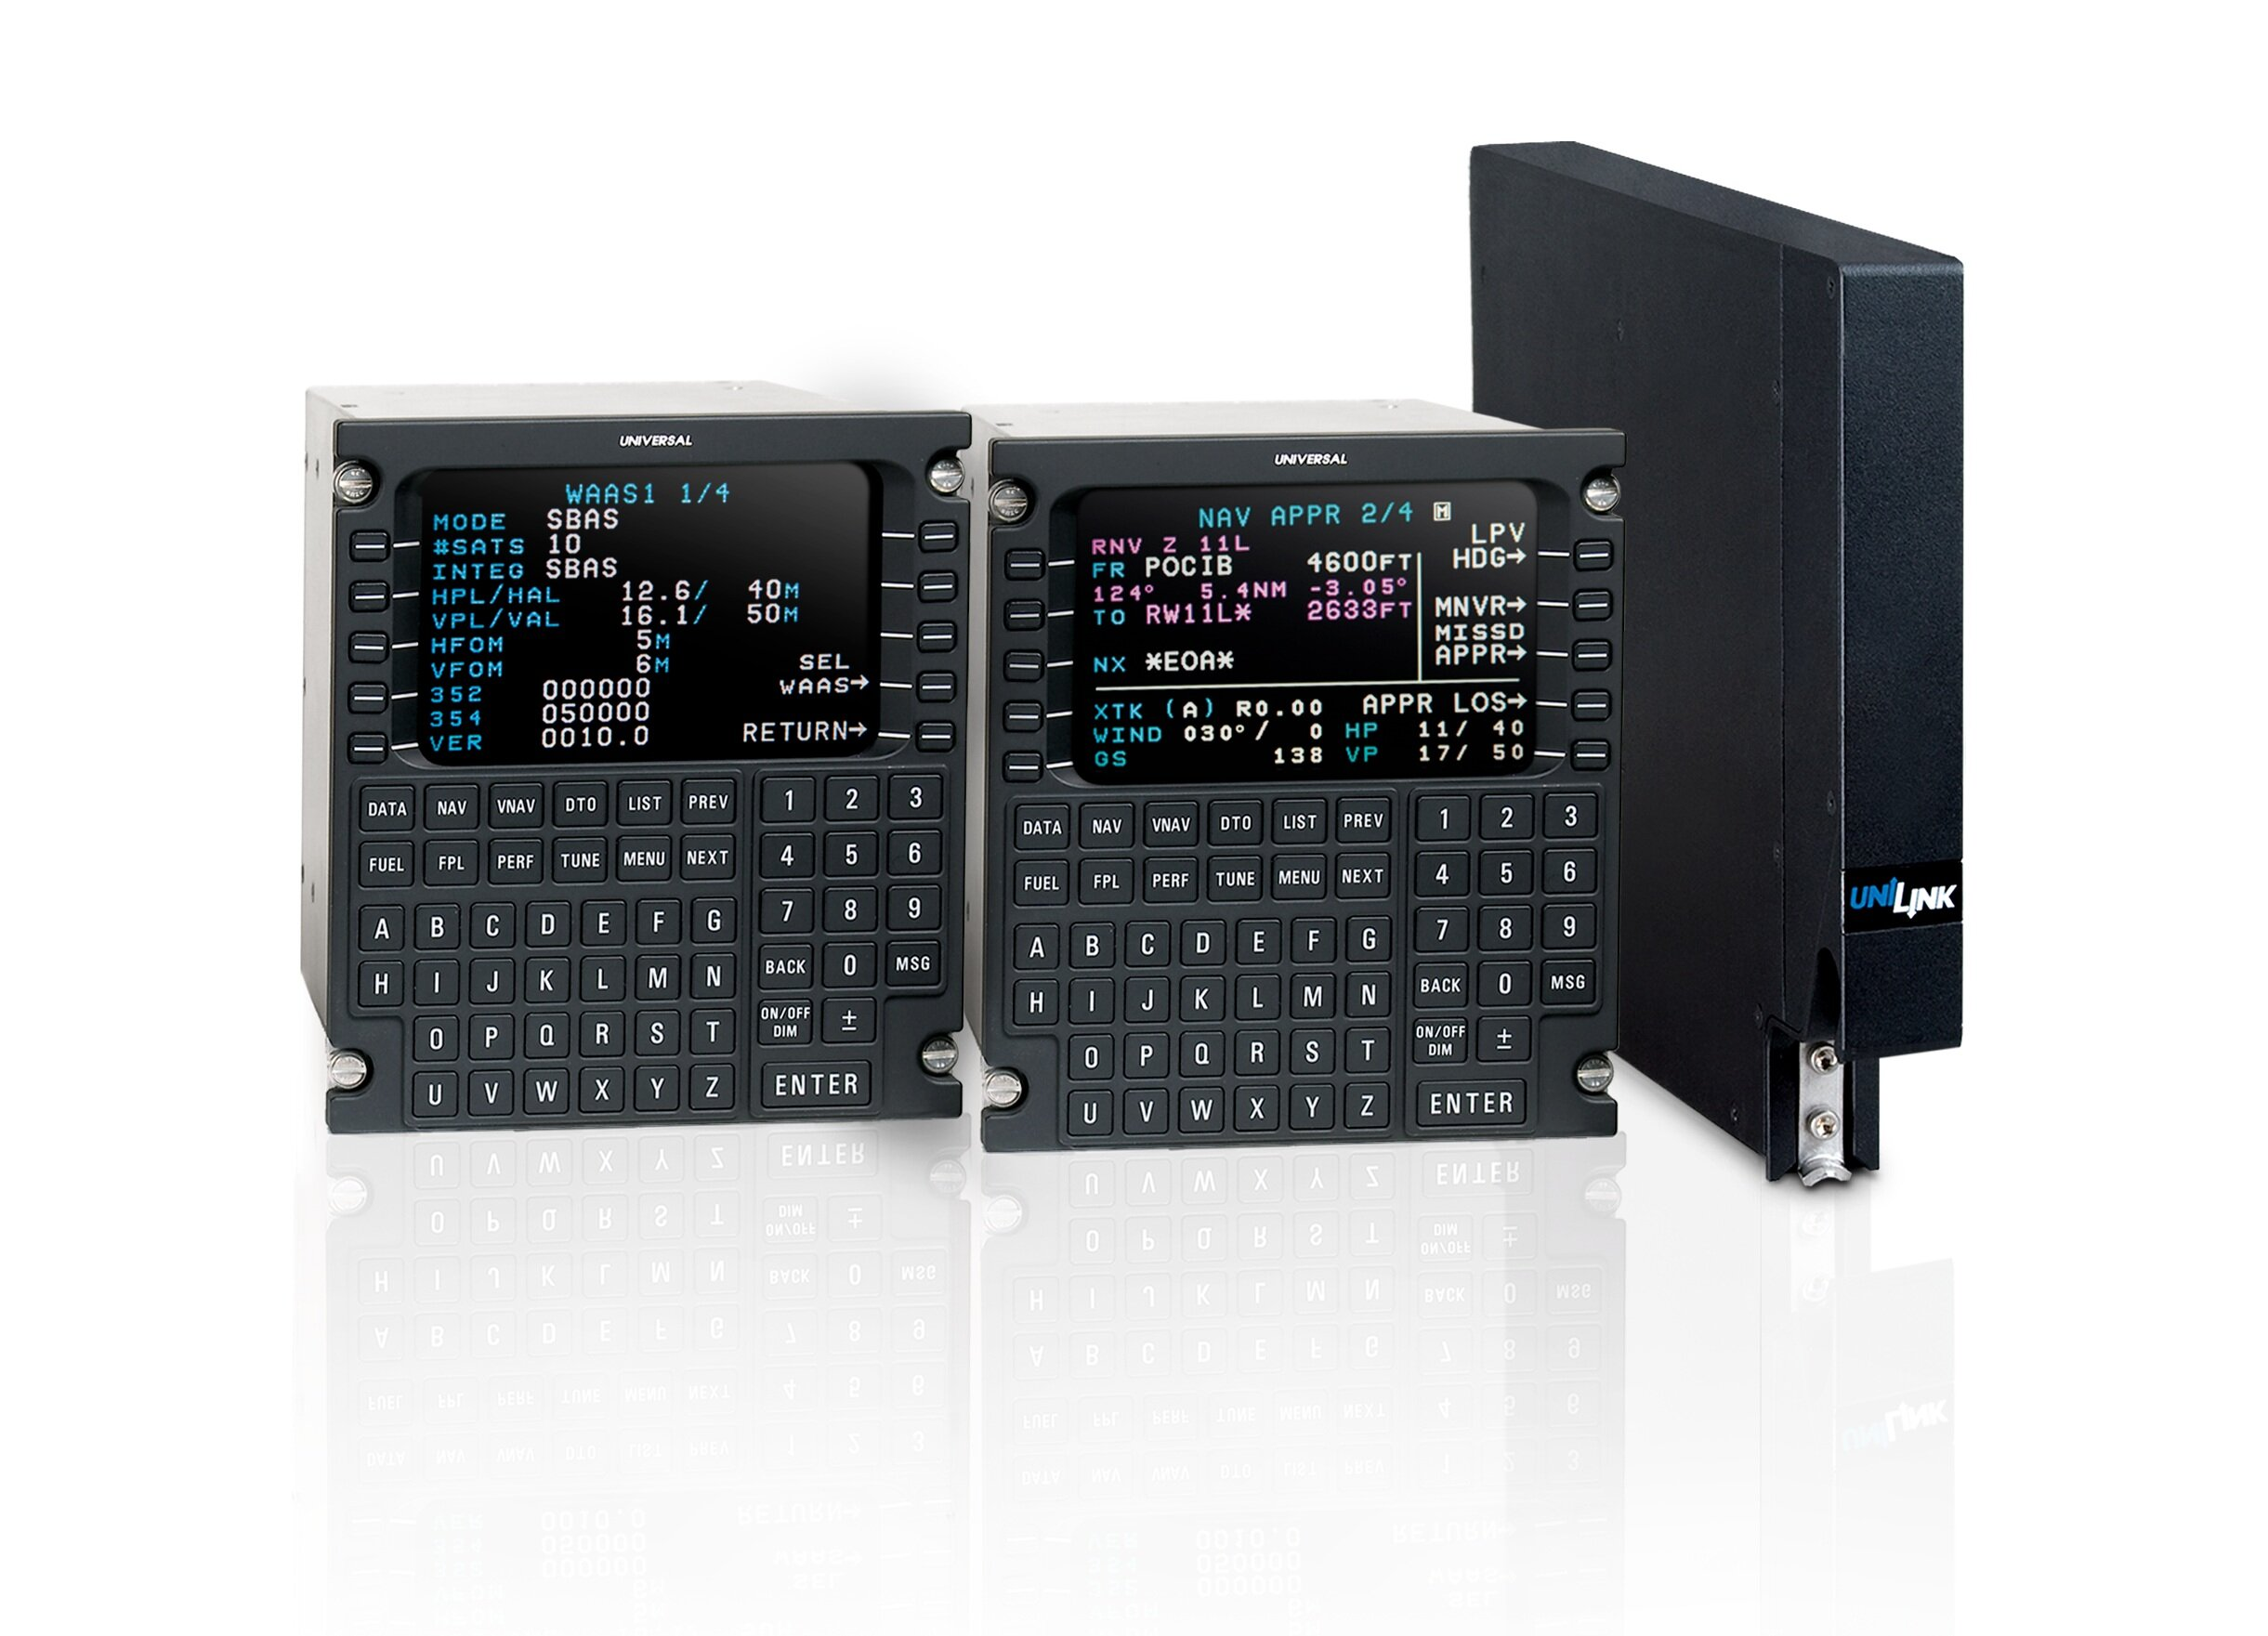 Dual Universal UNS-1Espw FMS's with UniLink